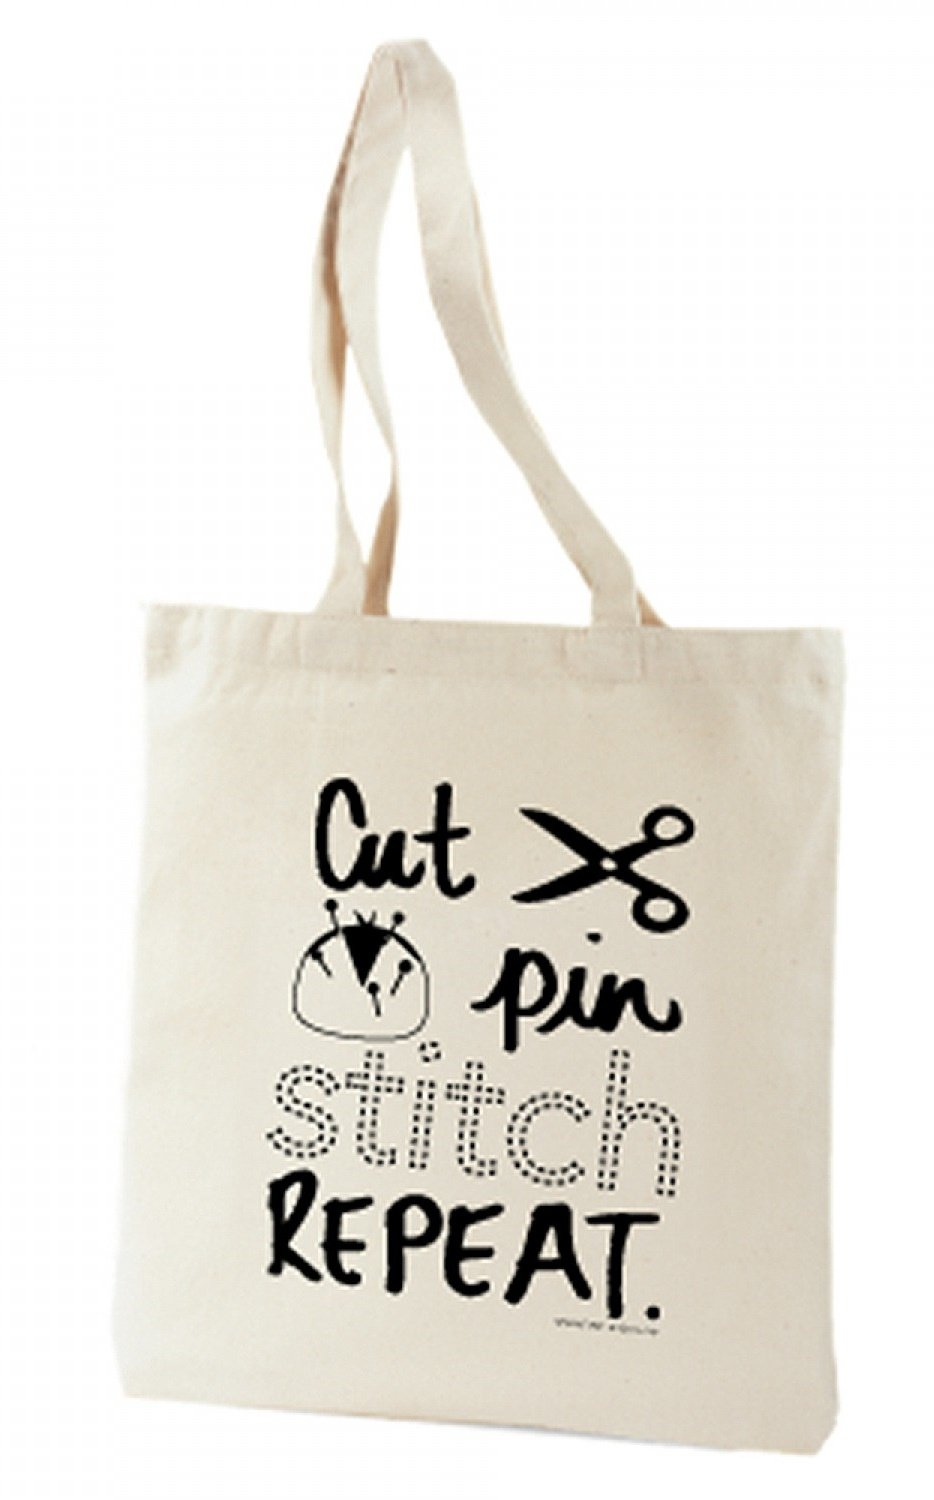 Cut, Pin, Stitch, Repeat Tote